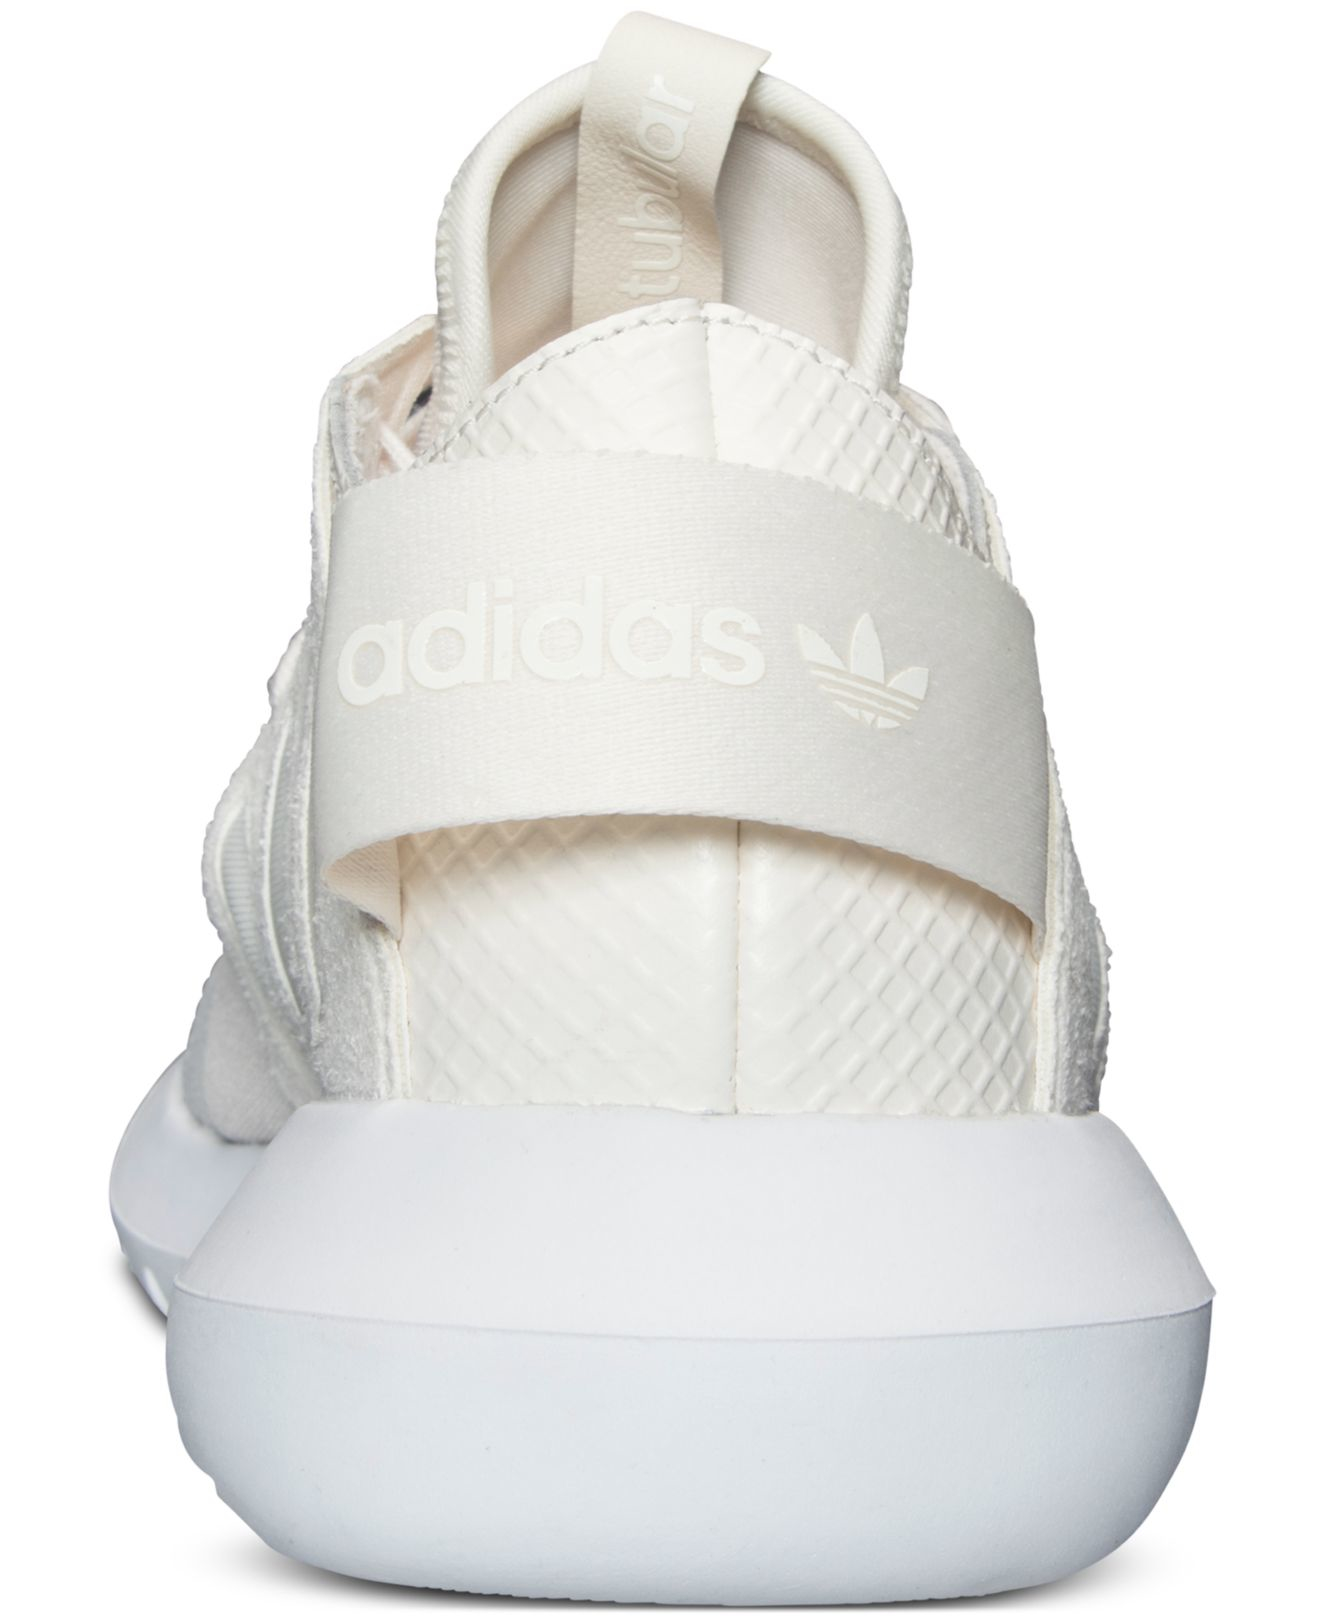 new styles 04087 a29ff Lyst - adidas Originals Women s Originals Tubular Viral Casual ...